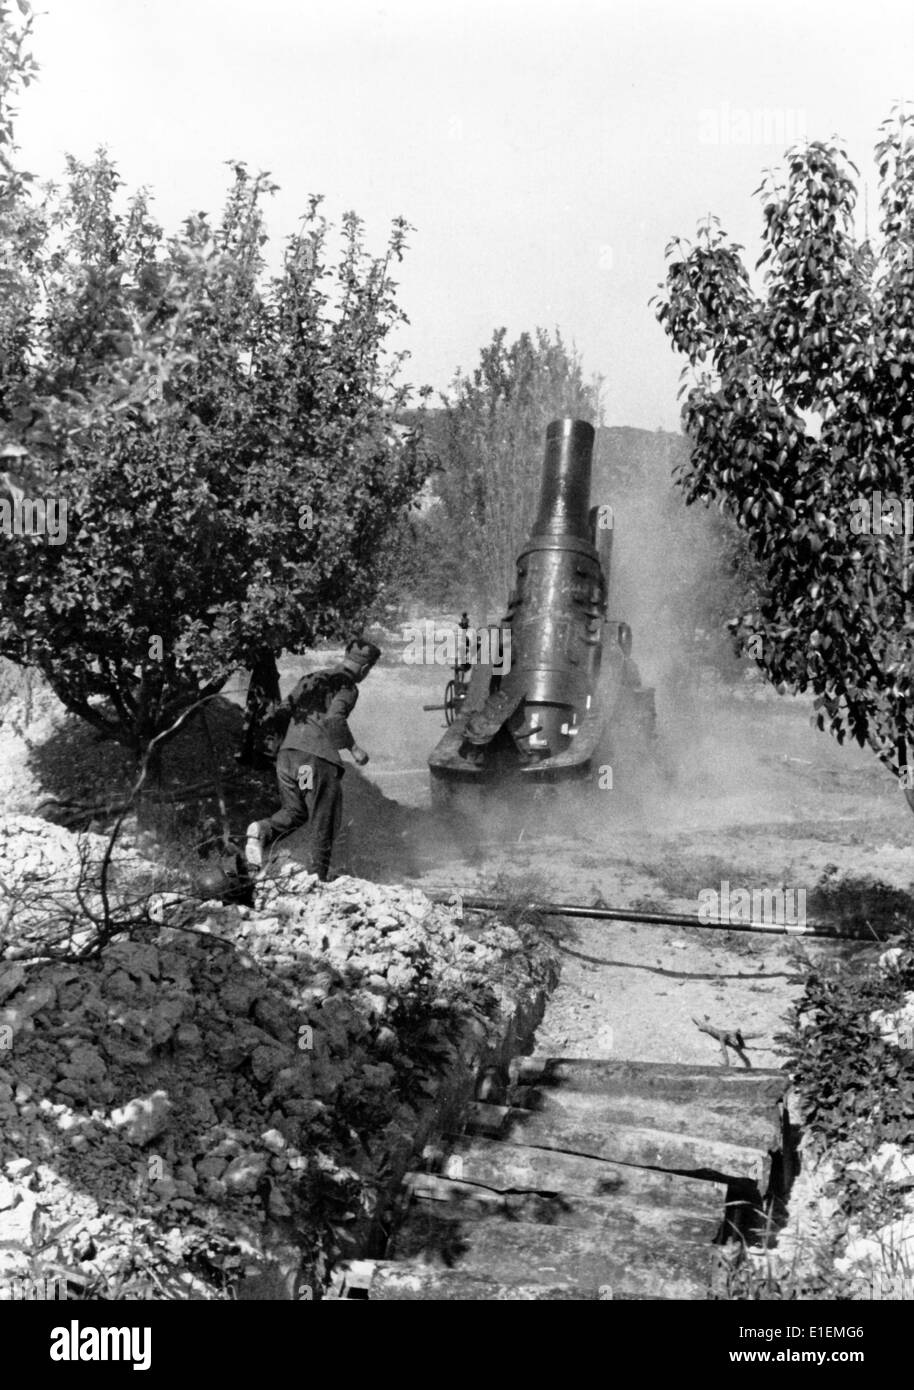 The picture from Nazi news reports shows a German soldier firing a canon near Sevastopol, in Crimea, 1942. Photo: Stock Photo